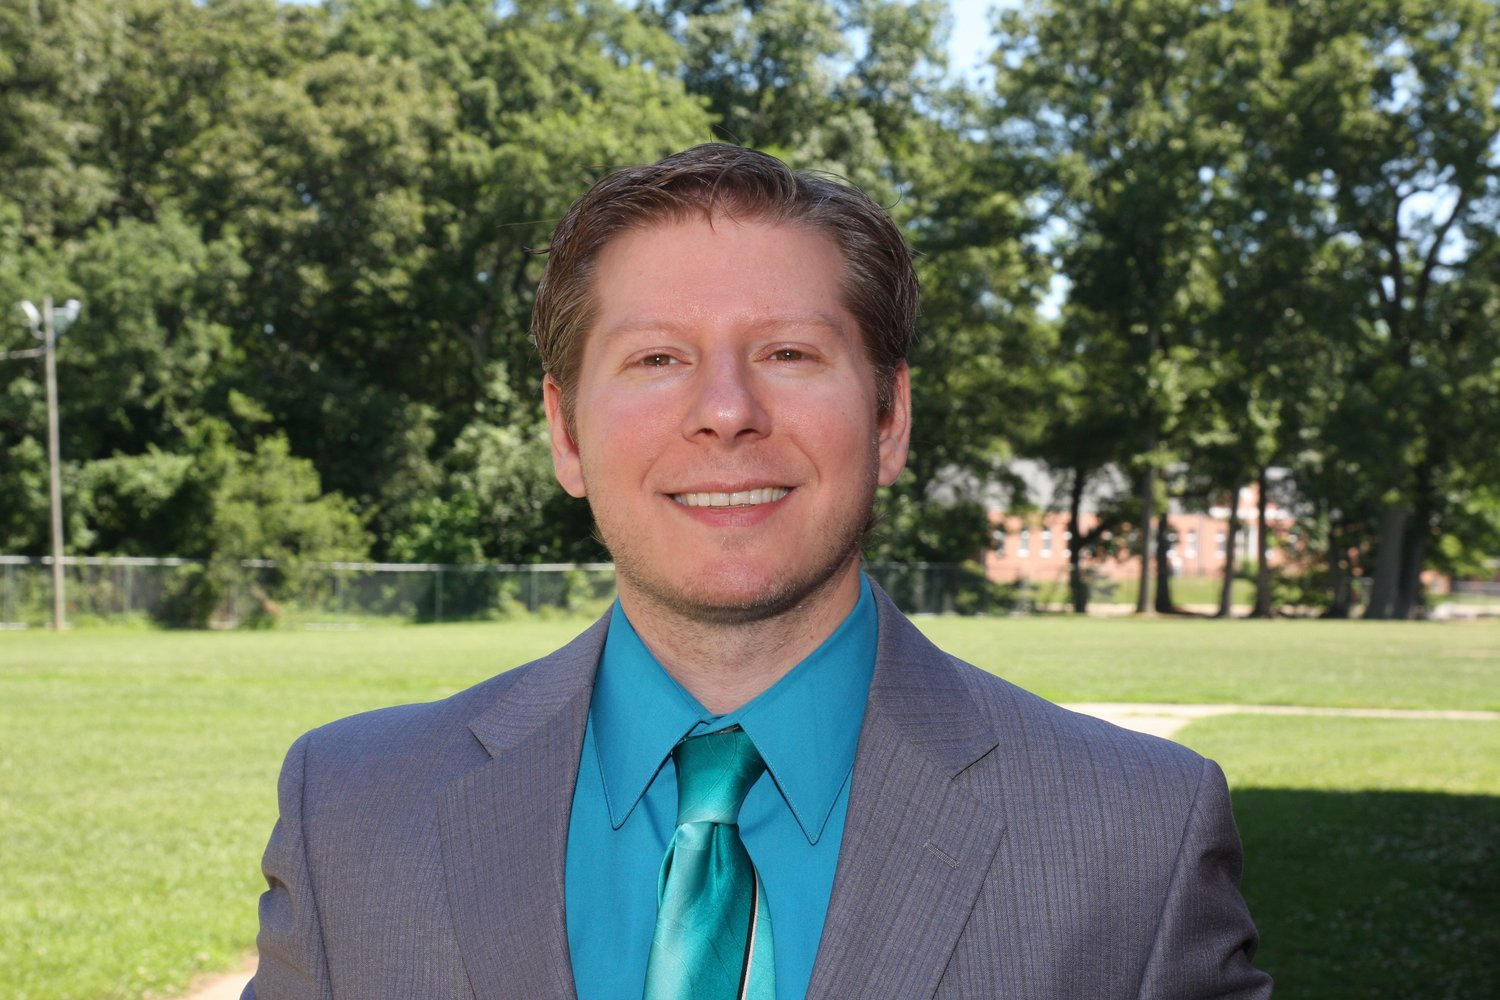 Dr. Jared Bloom, an assistant superintendent in South Huntington School District, will serve as the new Franklin Square School District superintendent come July.